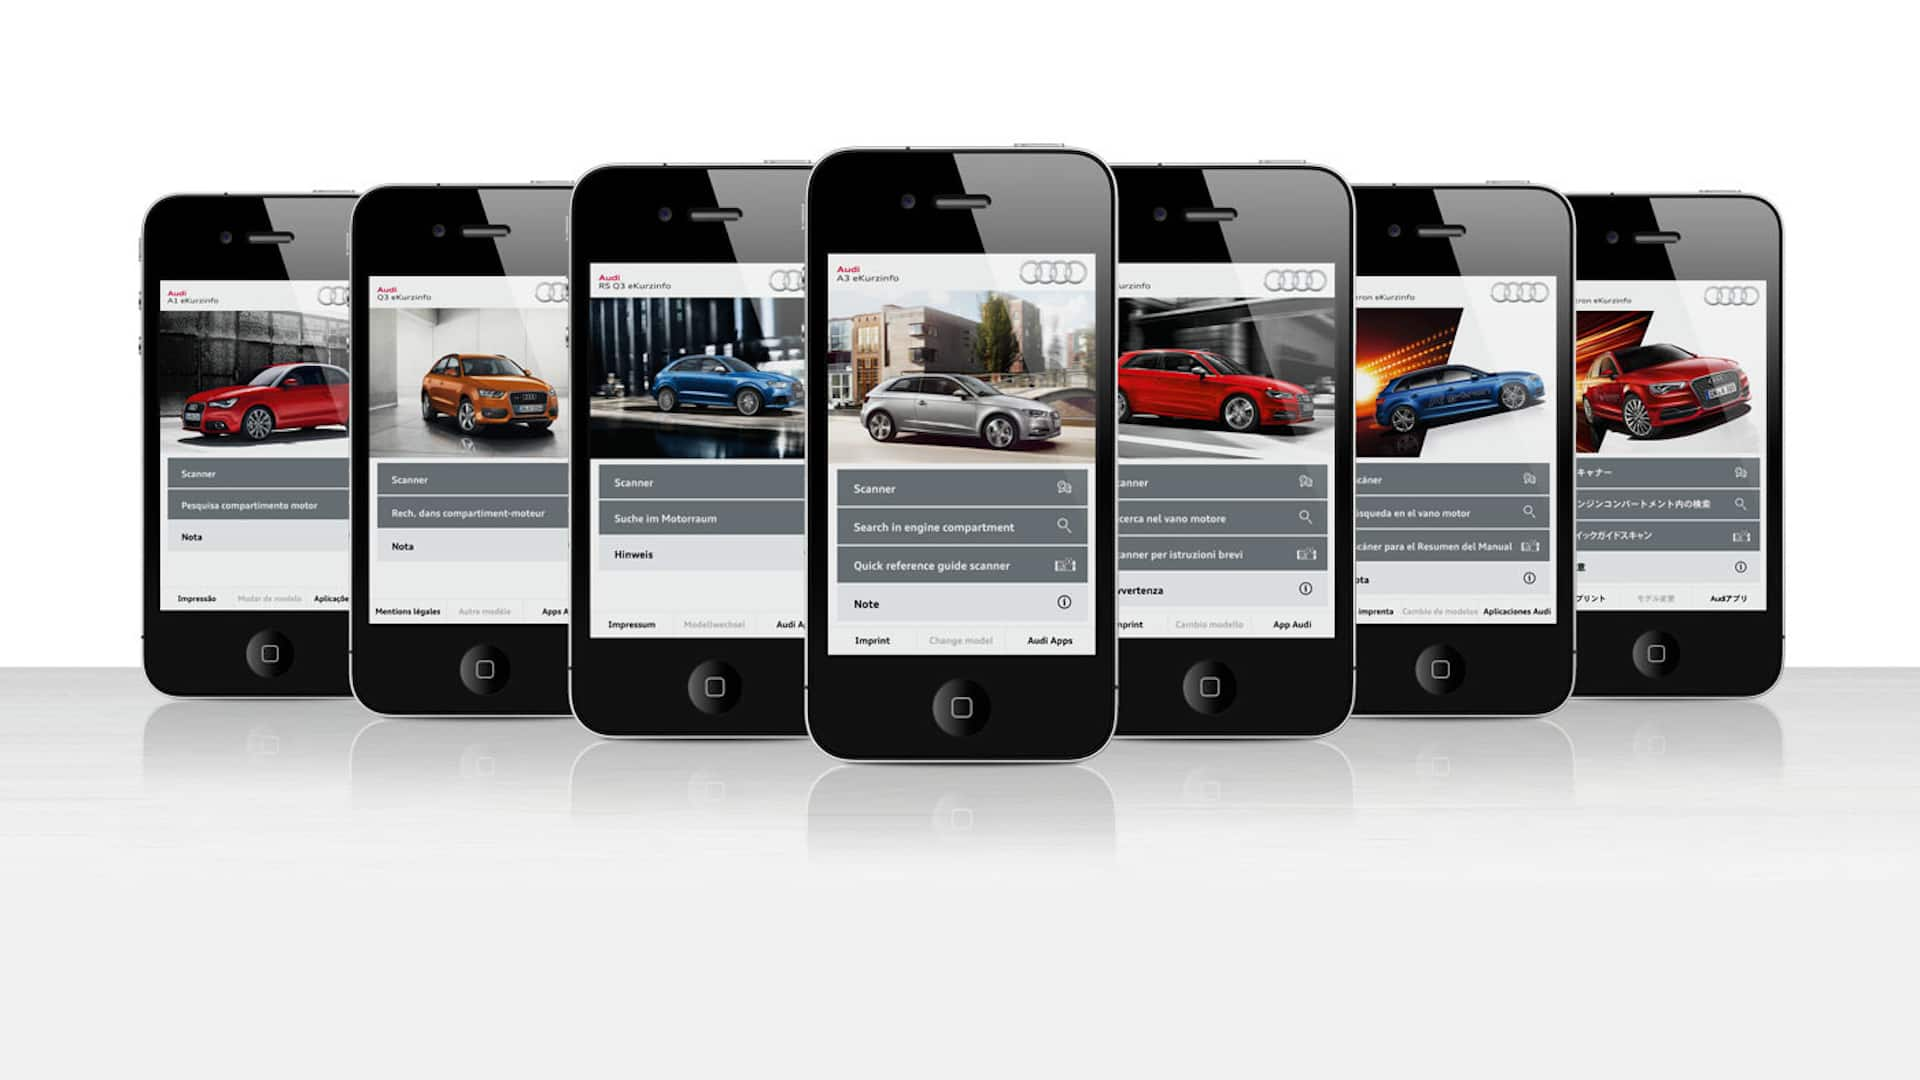 Audi heeft handige en leuke apps voor uw iPhone, Android smartphone en iPad. Die komen altijd van pas, in de auto of ergens anders. De Audi apps zijn gratis te downloaden in de iTunes App Store en Google Play.